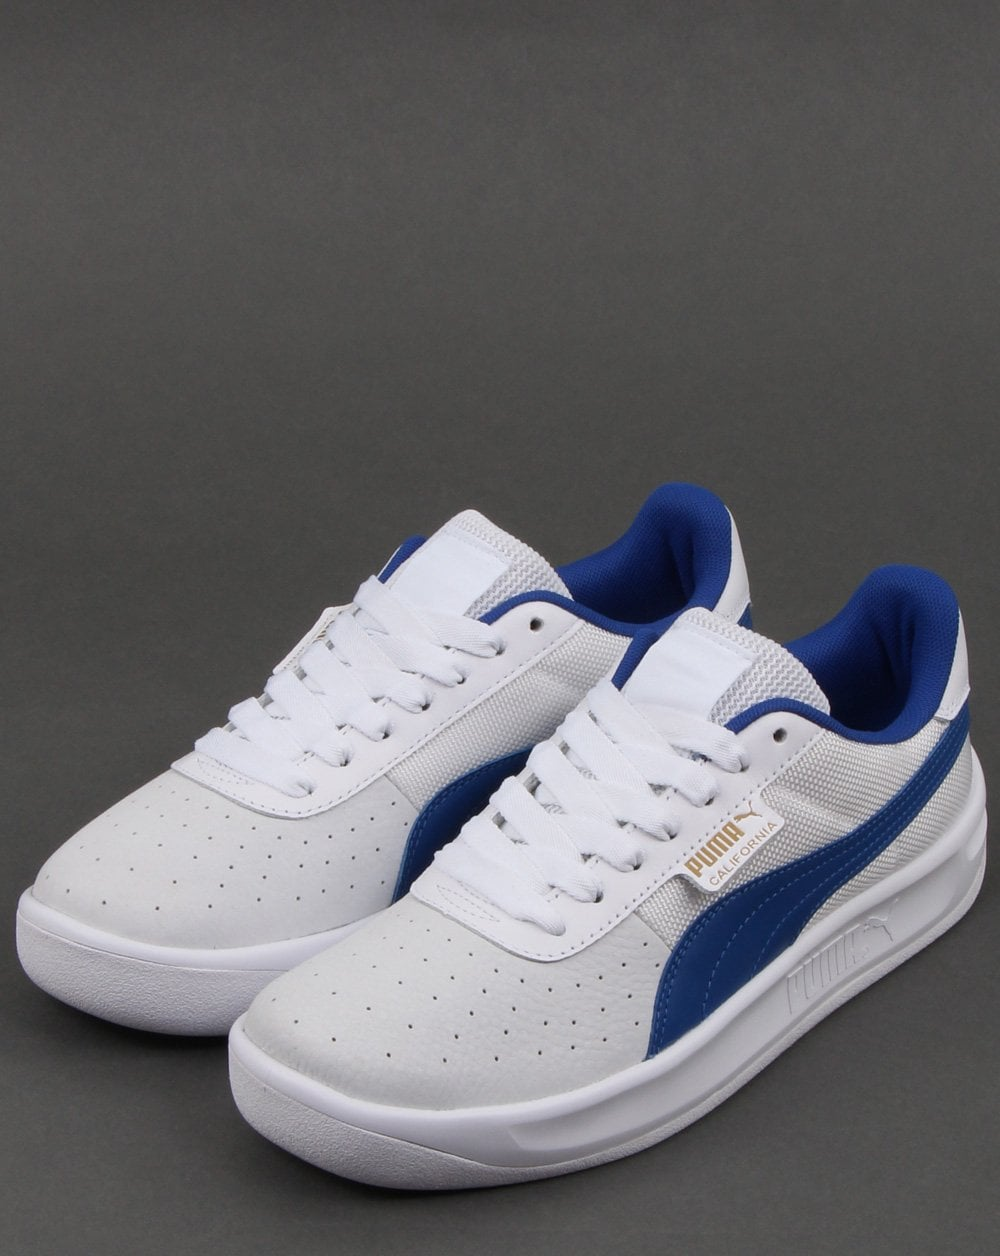 9a9d8afe6dc Puma California Trainer White Blue